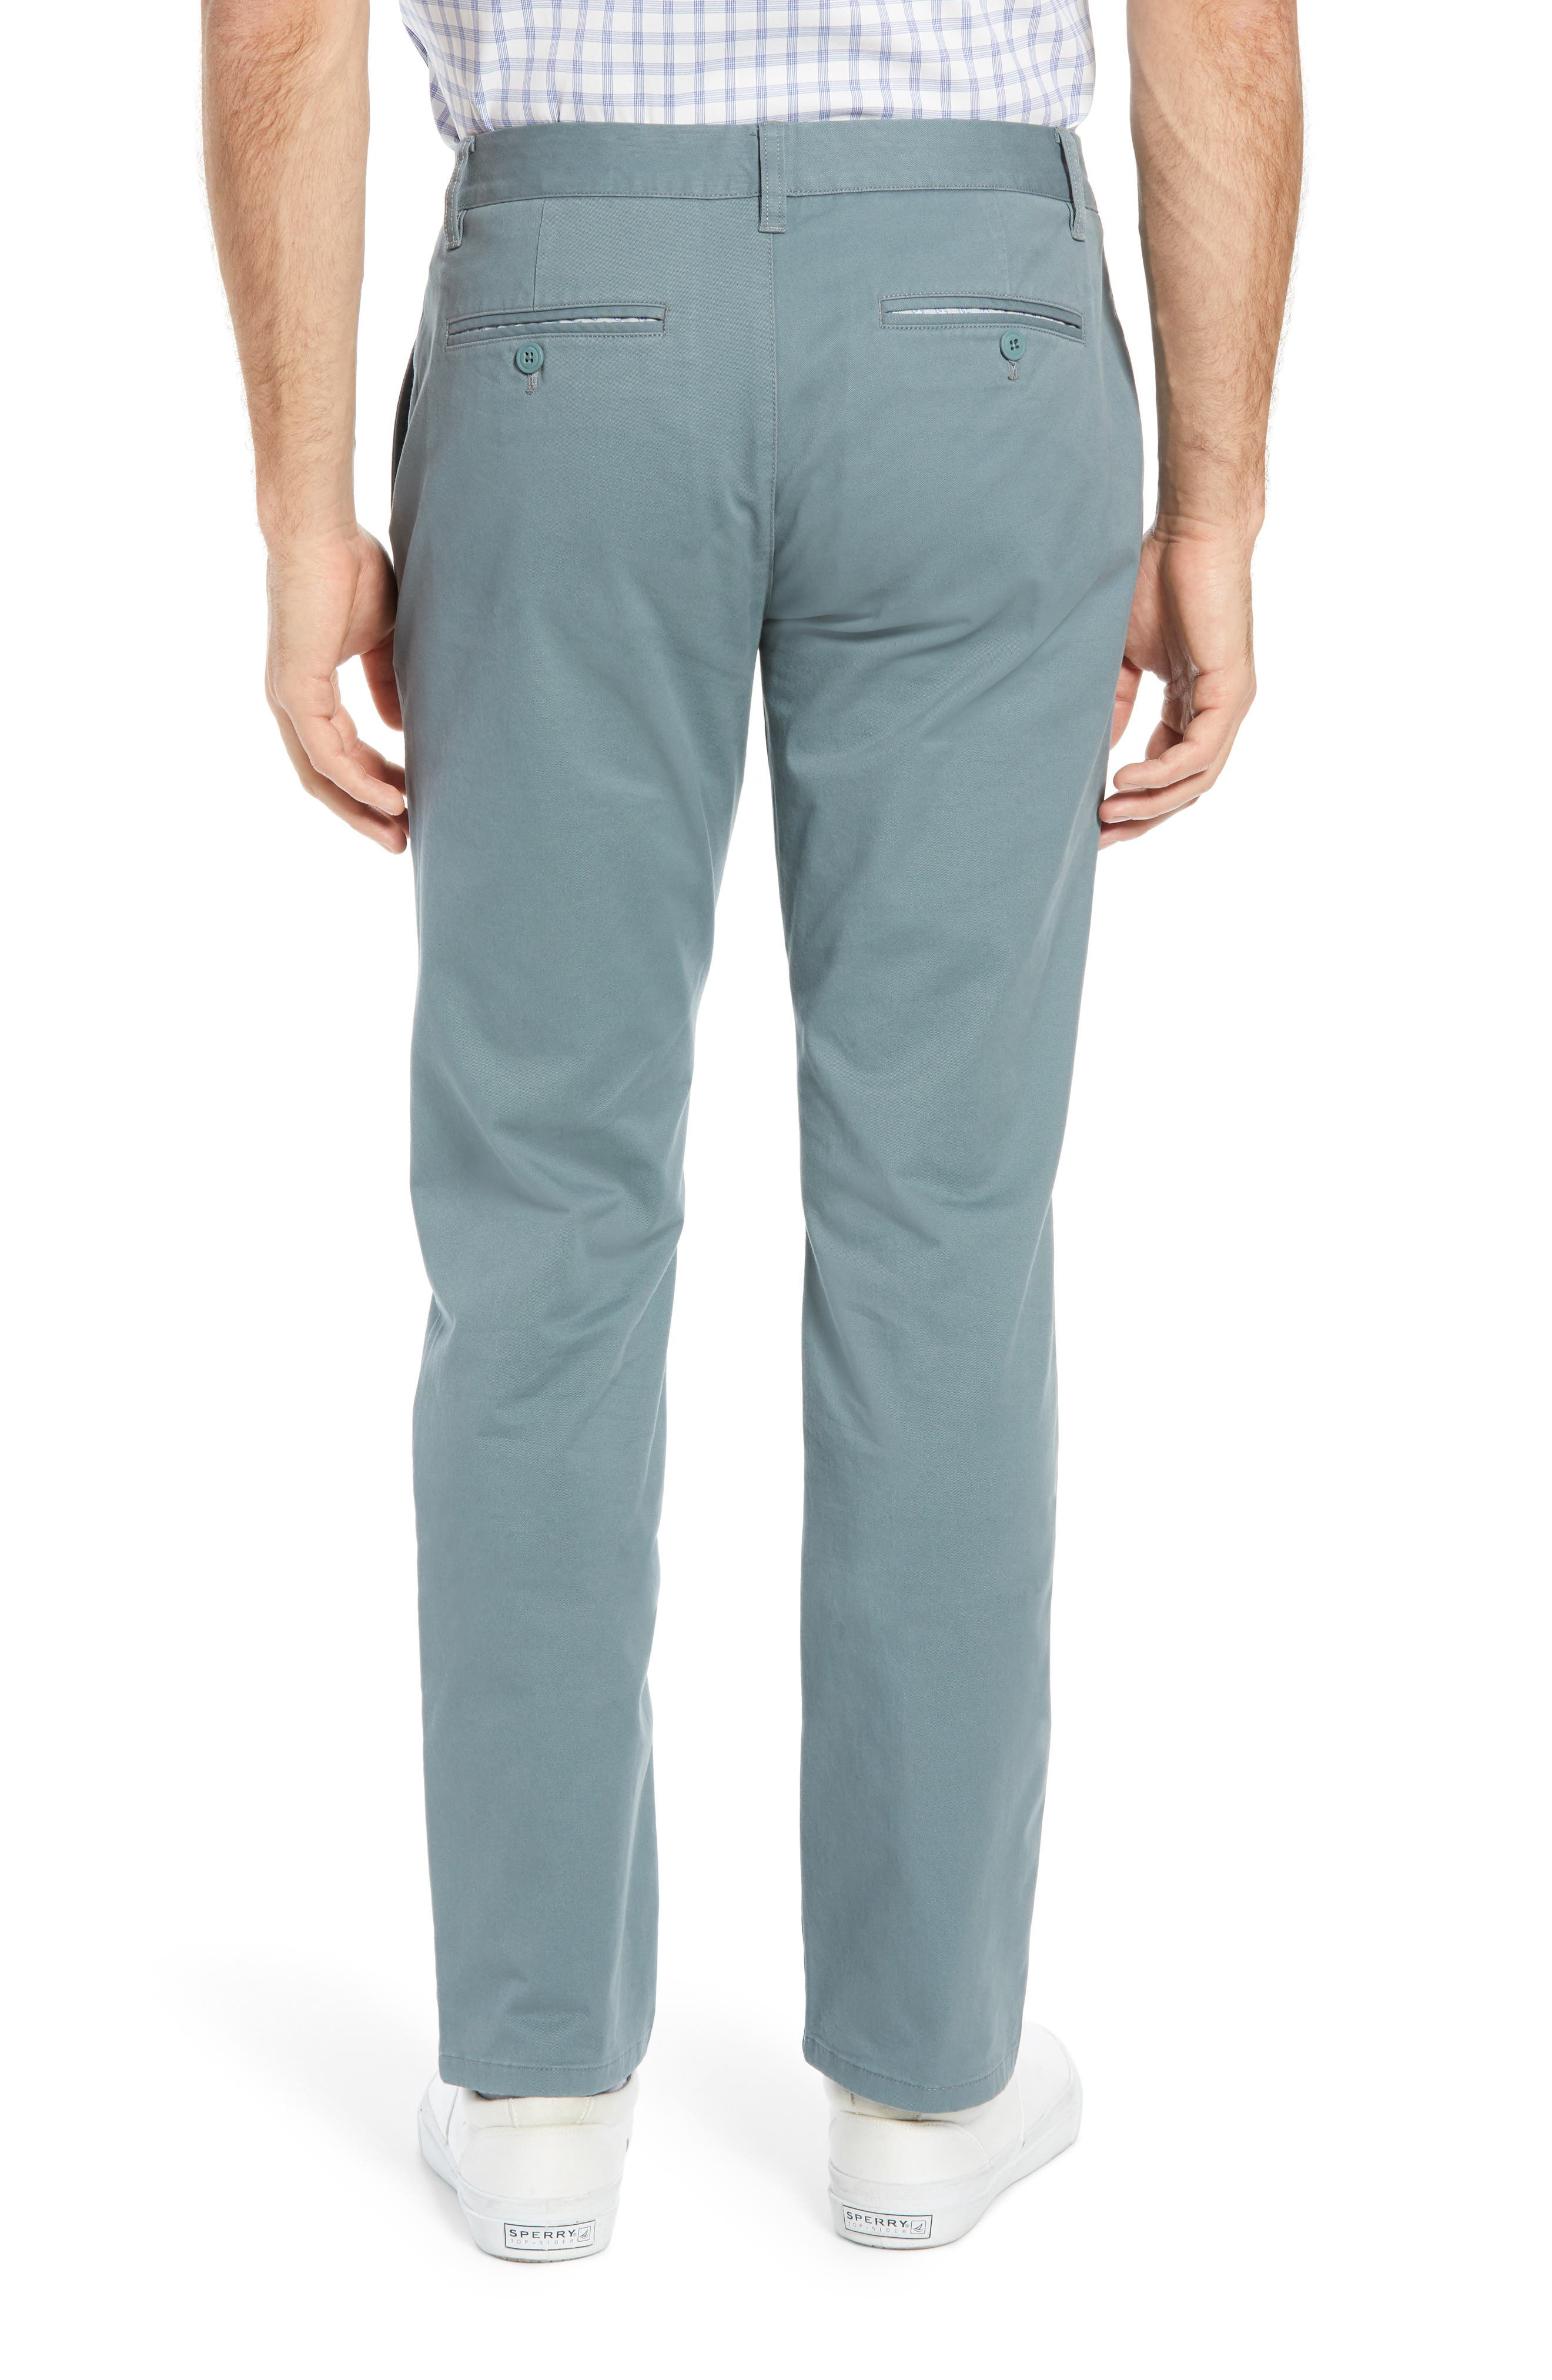 BONOBOS, Slim Fit Stretch Washed Chinos, Alternate thumbnail 2, color, NOPALES